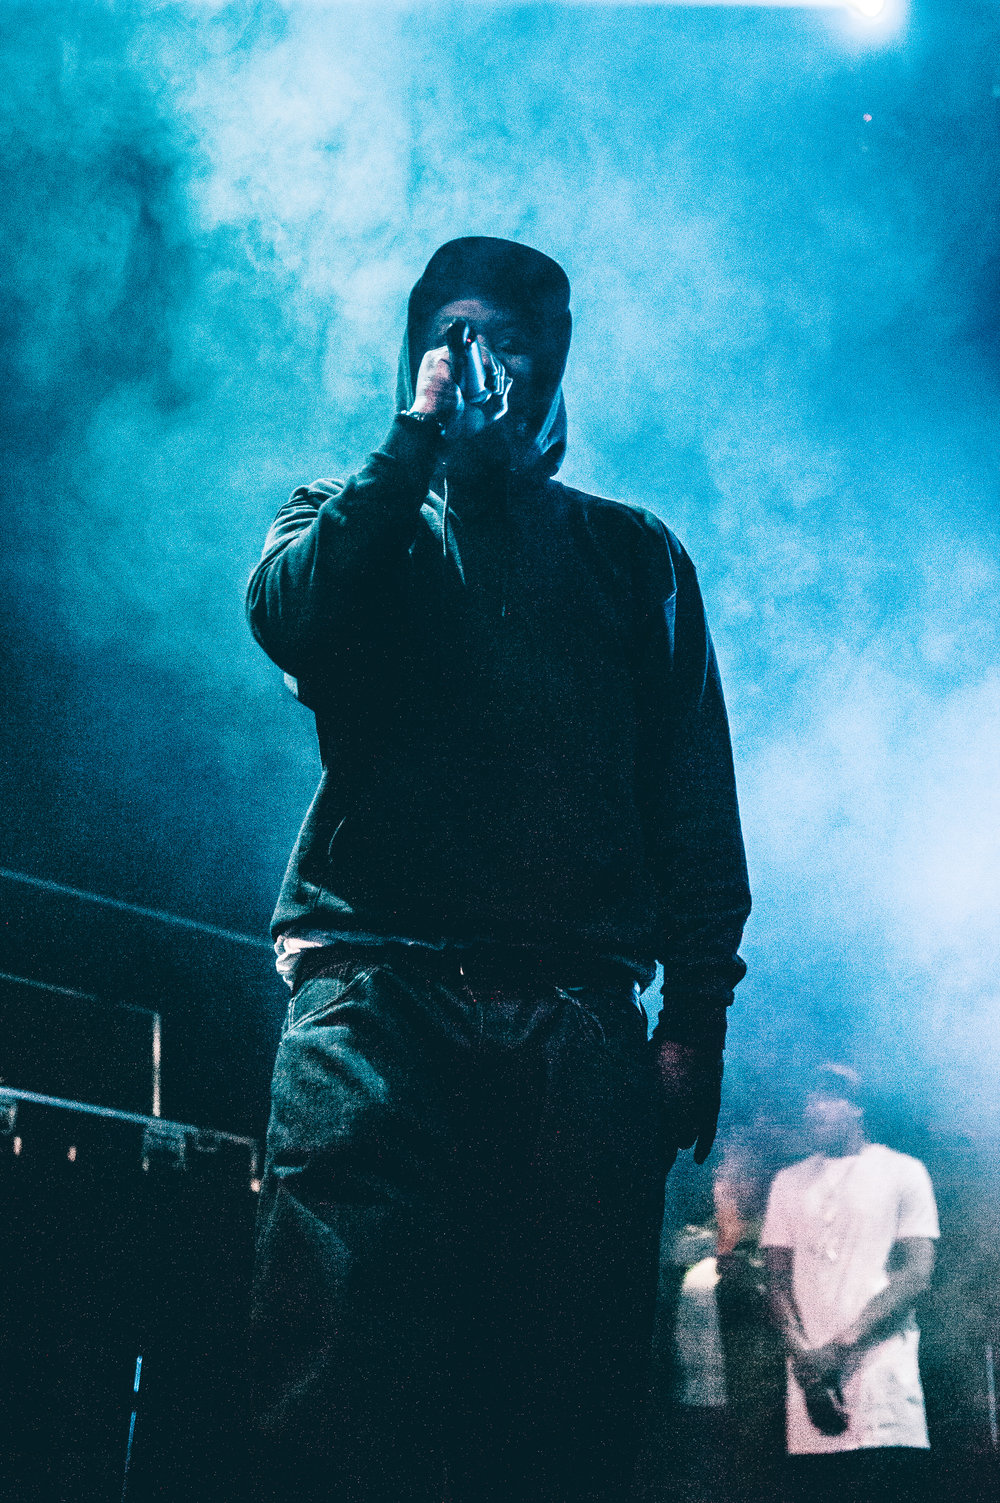 1_Ghostface_Killah-Rickshaw_Theatre-Timothy_Nguyen-20170227 (14 of 16).jpg